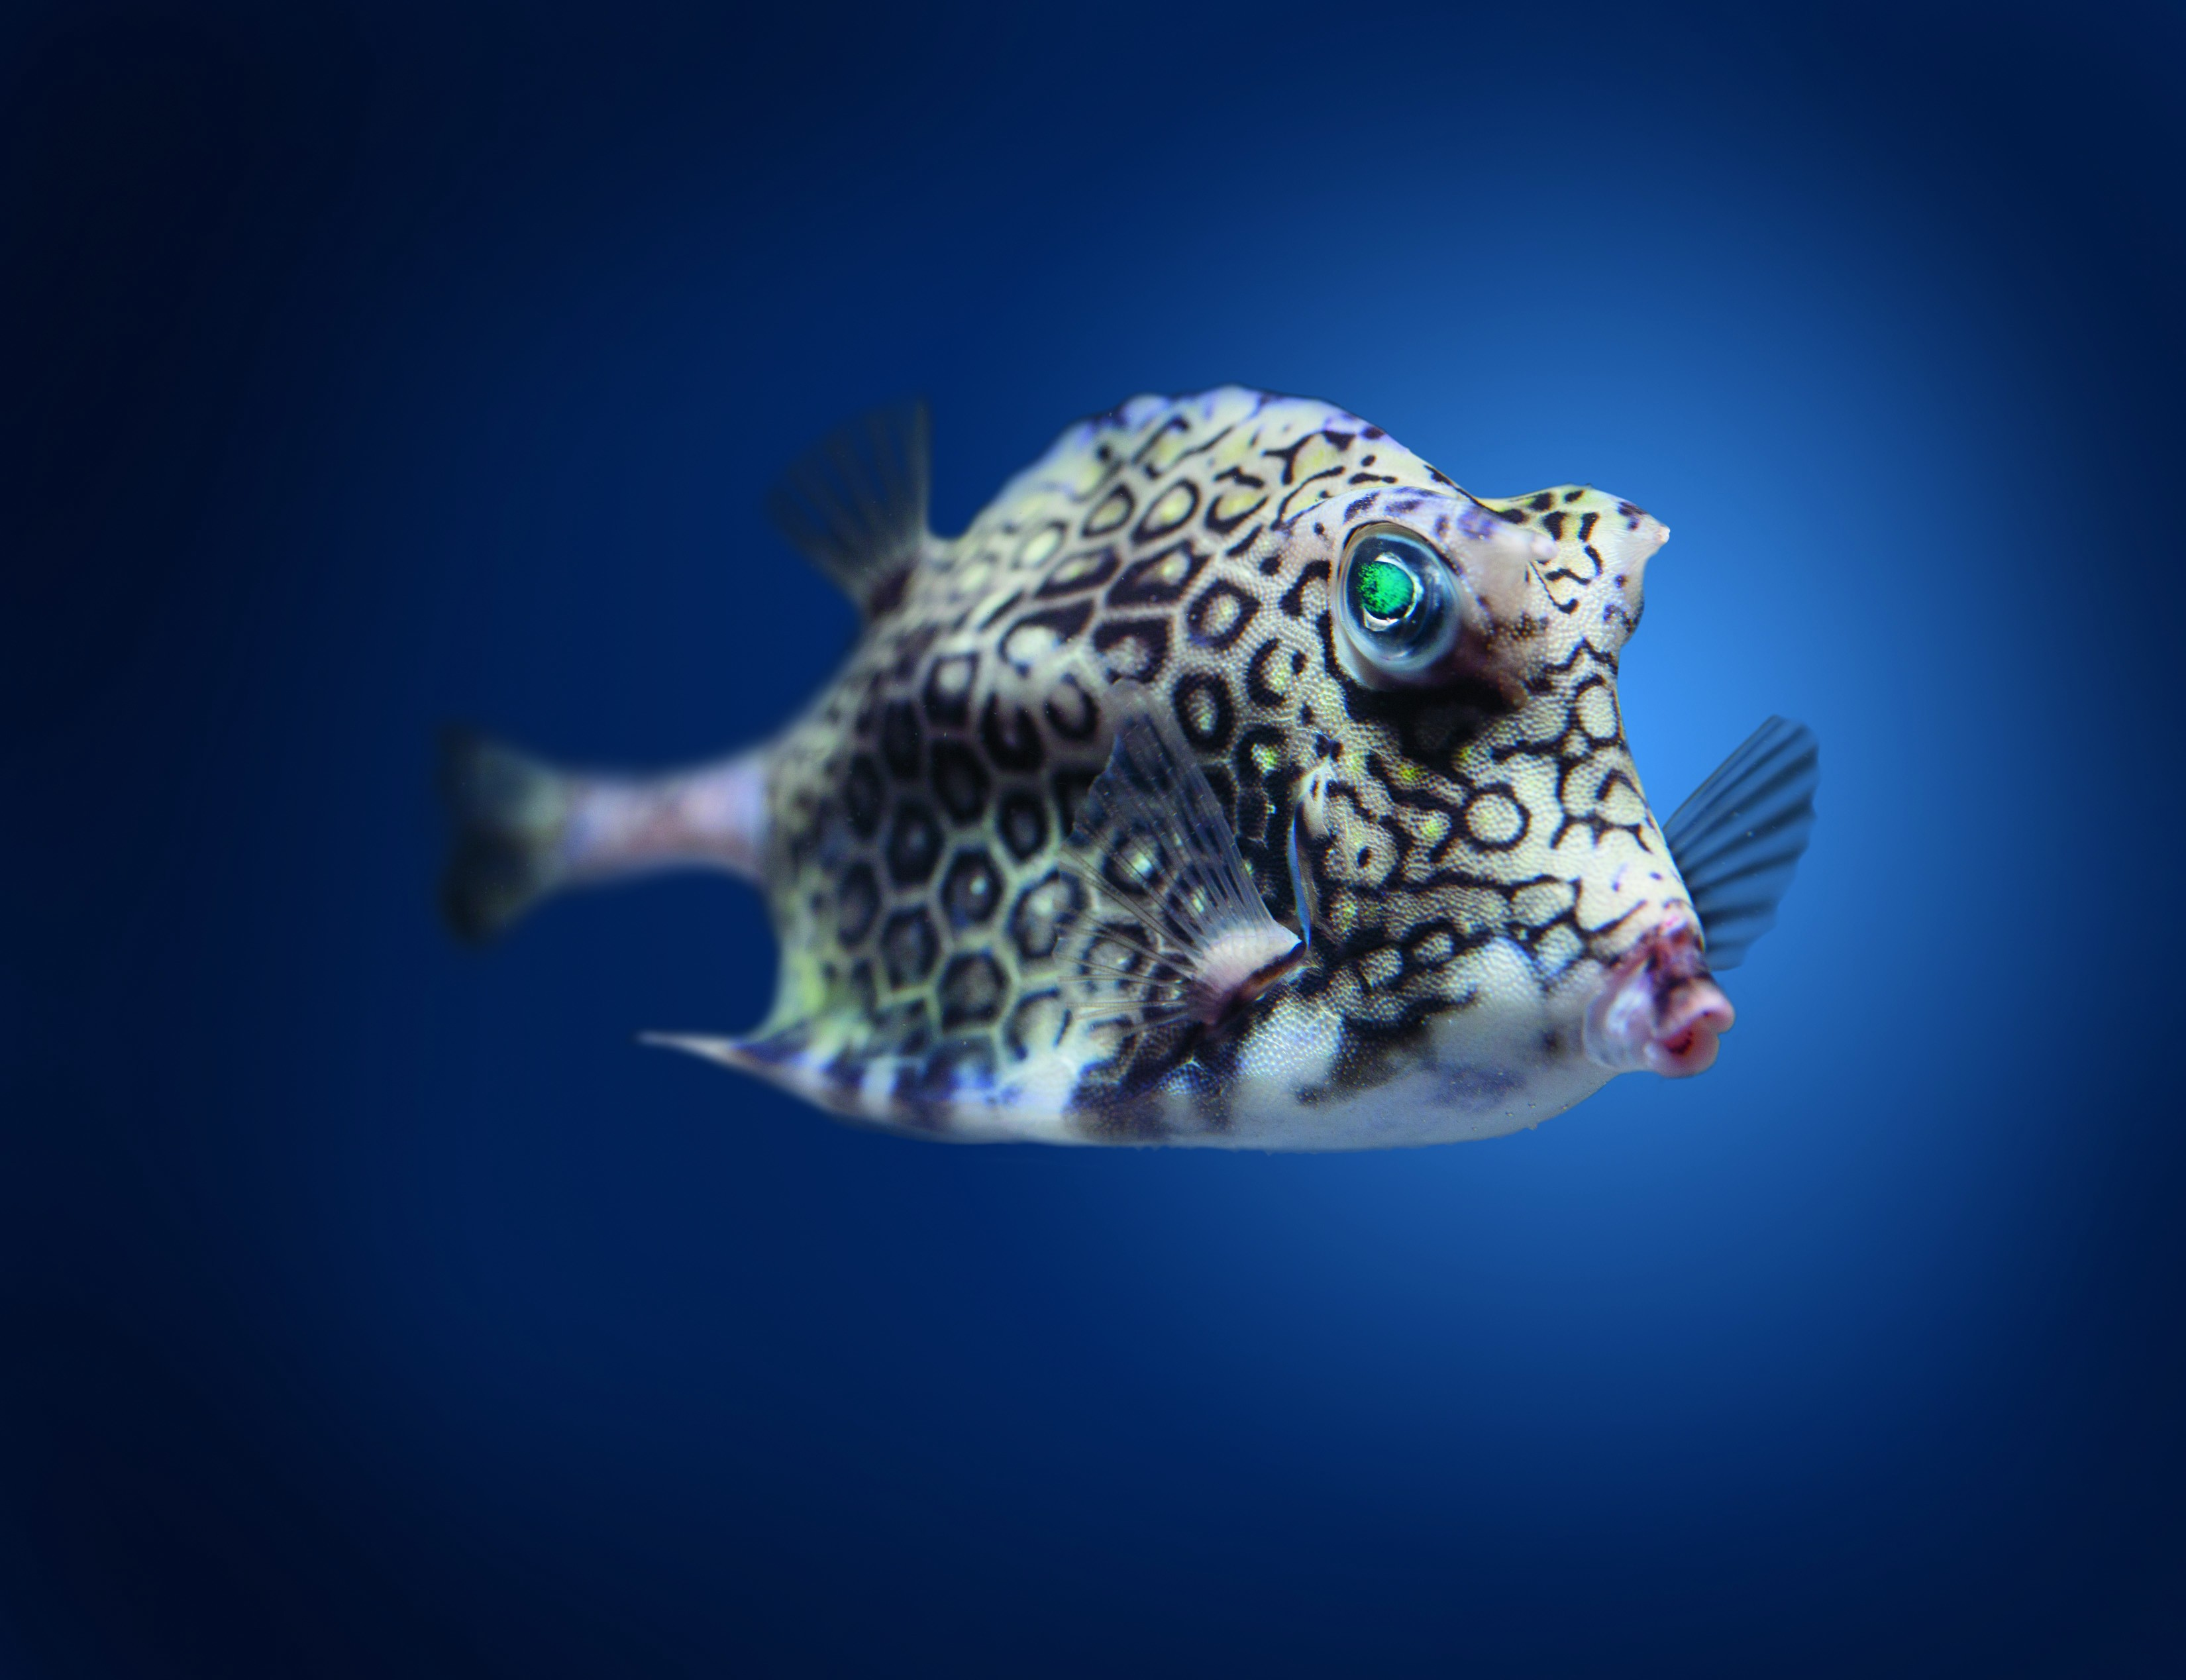 Wallpaper boxfish cowfish atlantic indian pacific ocean your resolution 1024x1024 sciox Choice Image